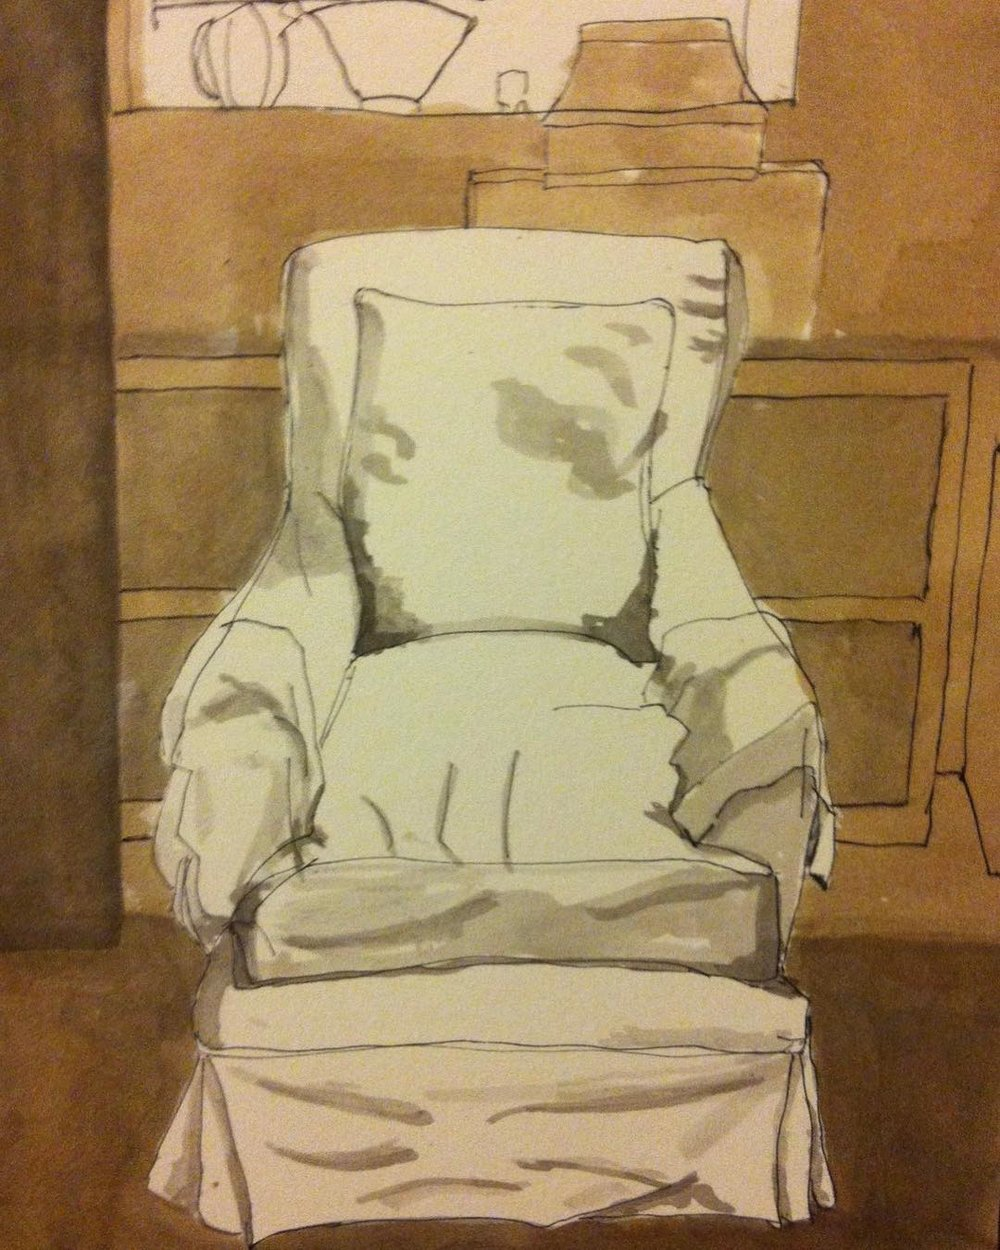 Dermot Meagher - White Chair and Ottoman